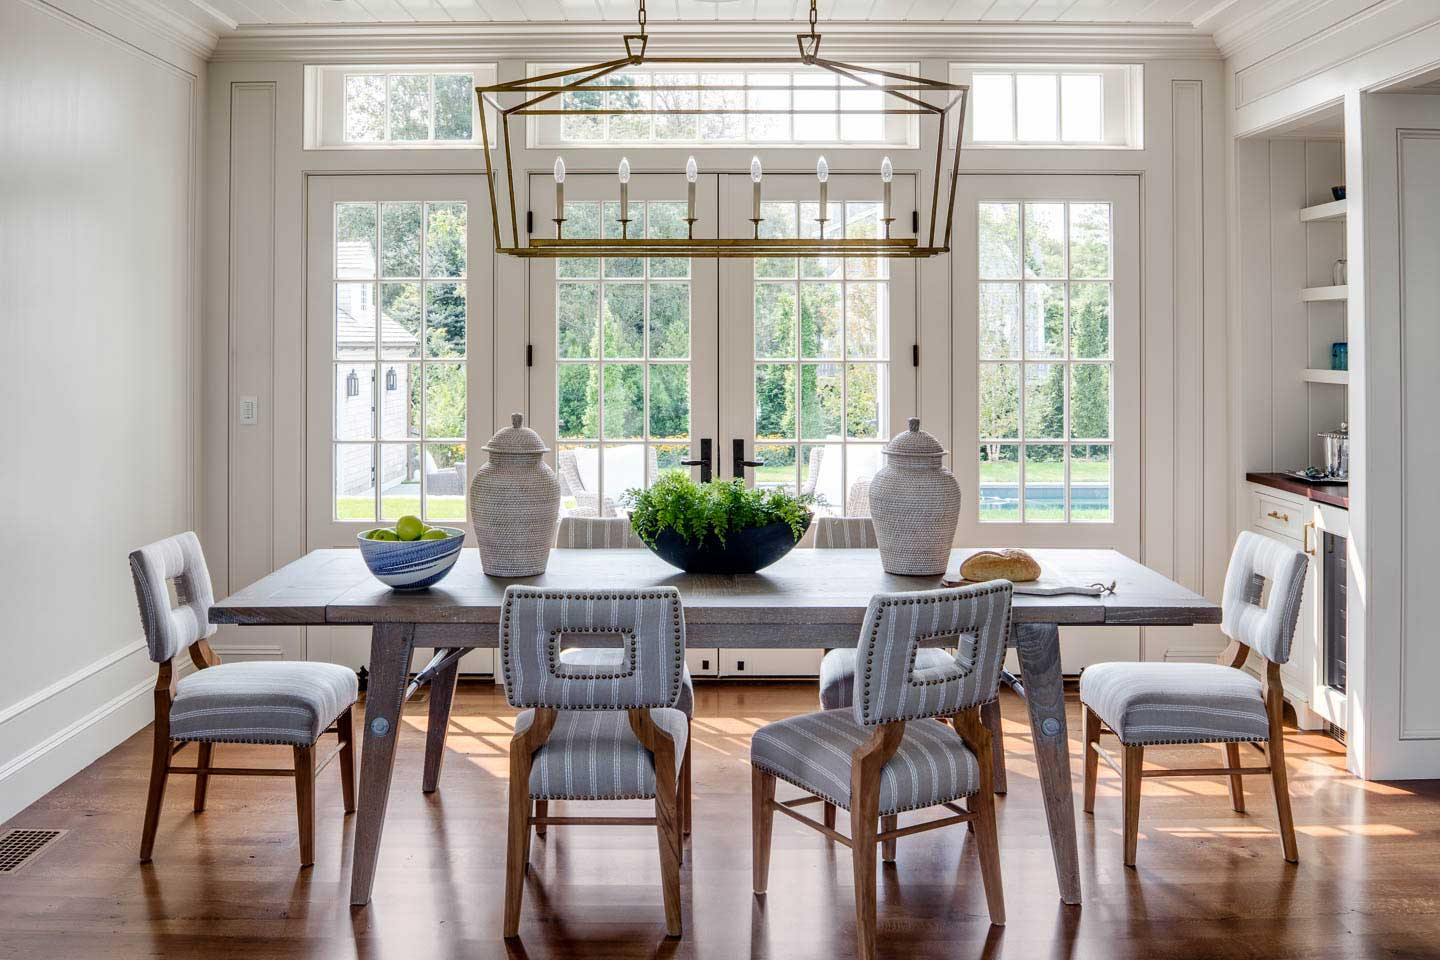 dining room, dining room table, table decor, pendant lighting, french doors